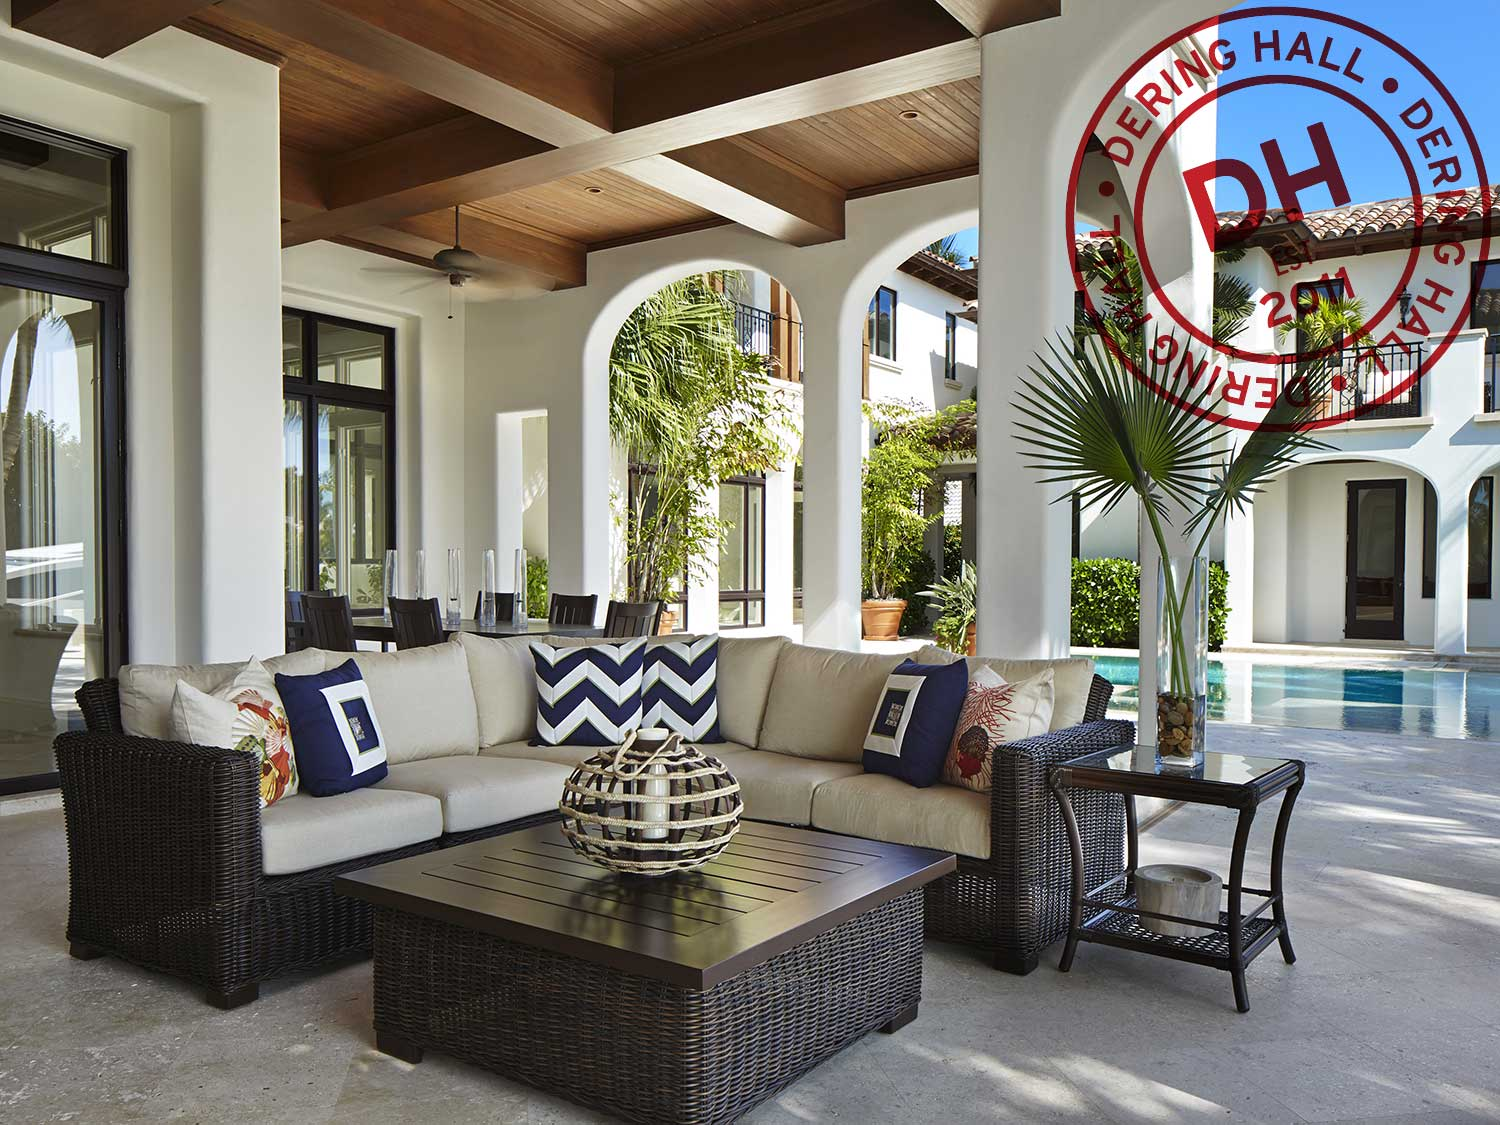 Derring Hall Outdoor Space with Ft Lauderdale Outdoor